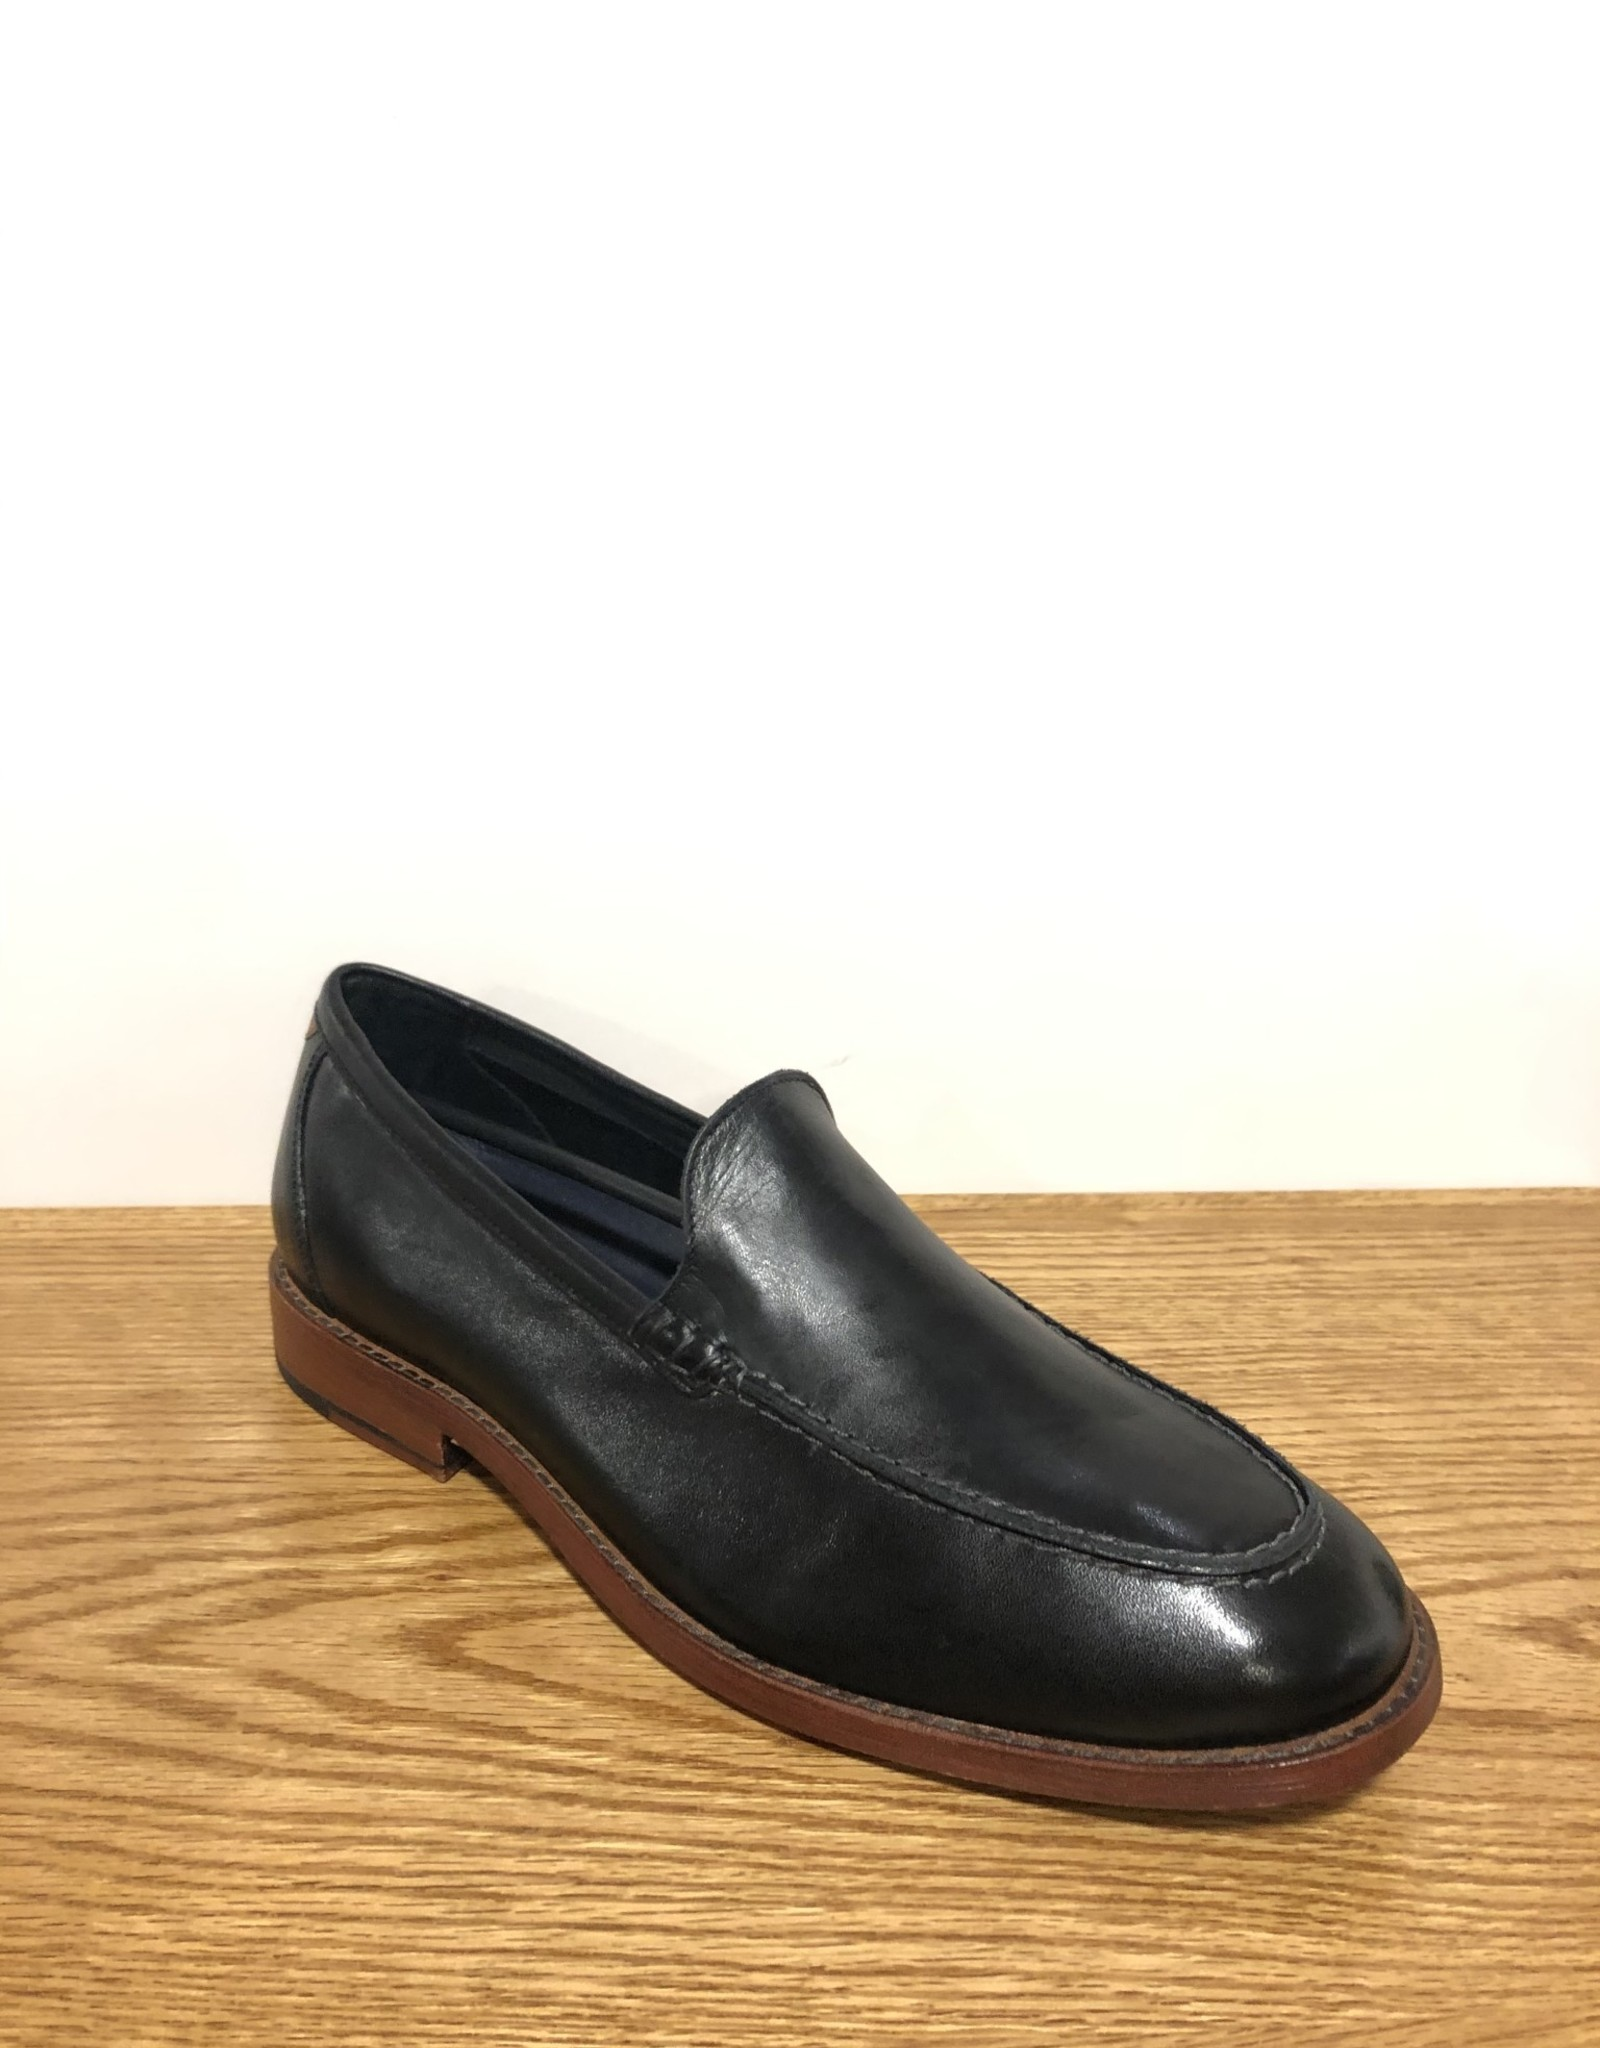 C29710 Black Feathercraft Slip-on Cole Haan